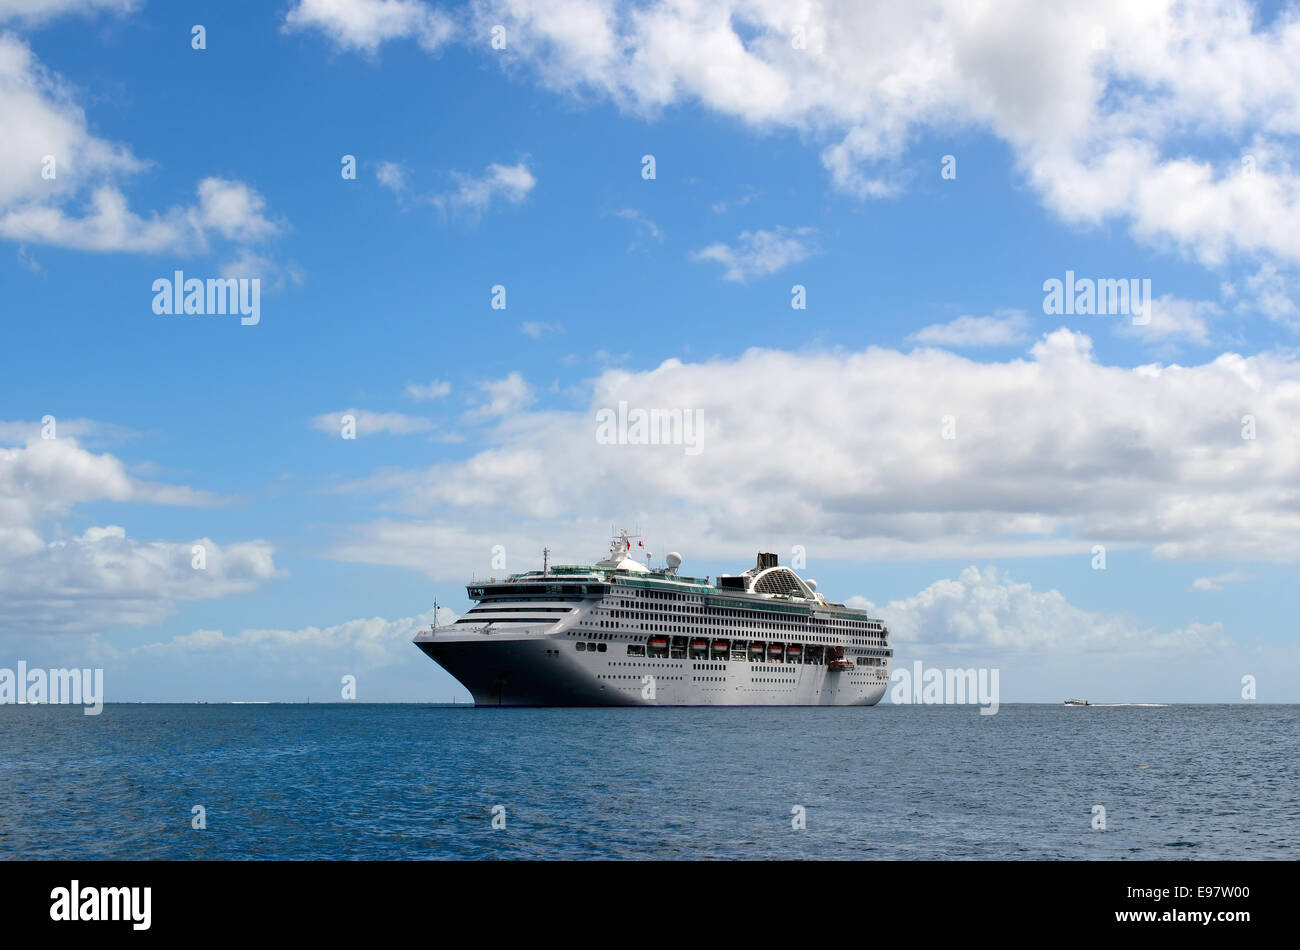 A cruise ship in the sea under the clouds. - Stock Image